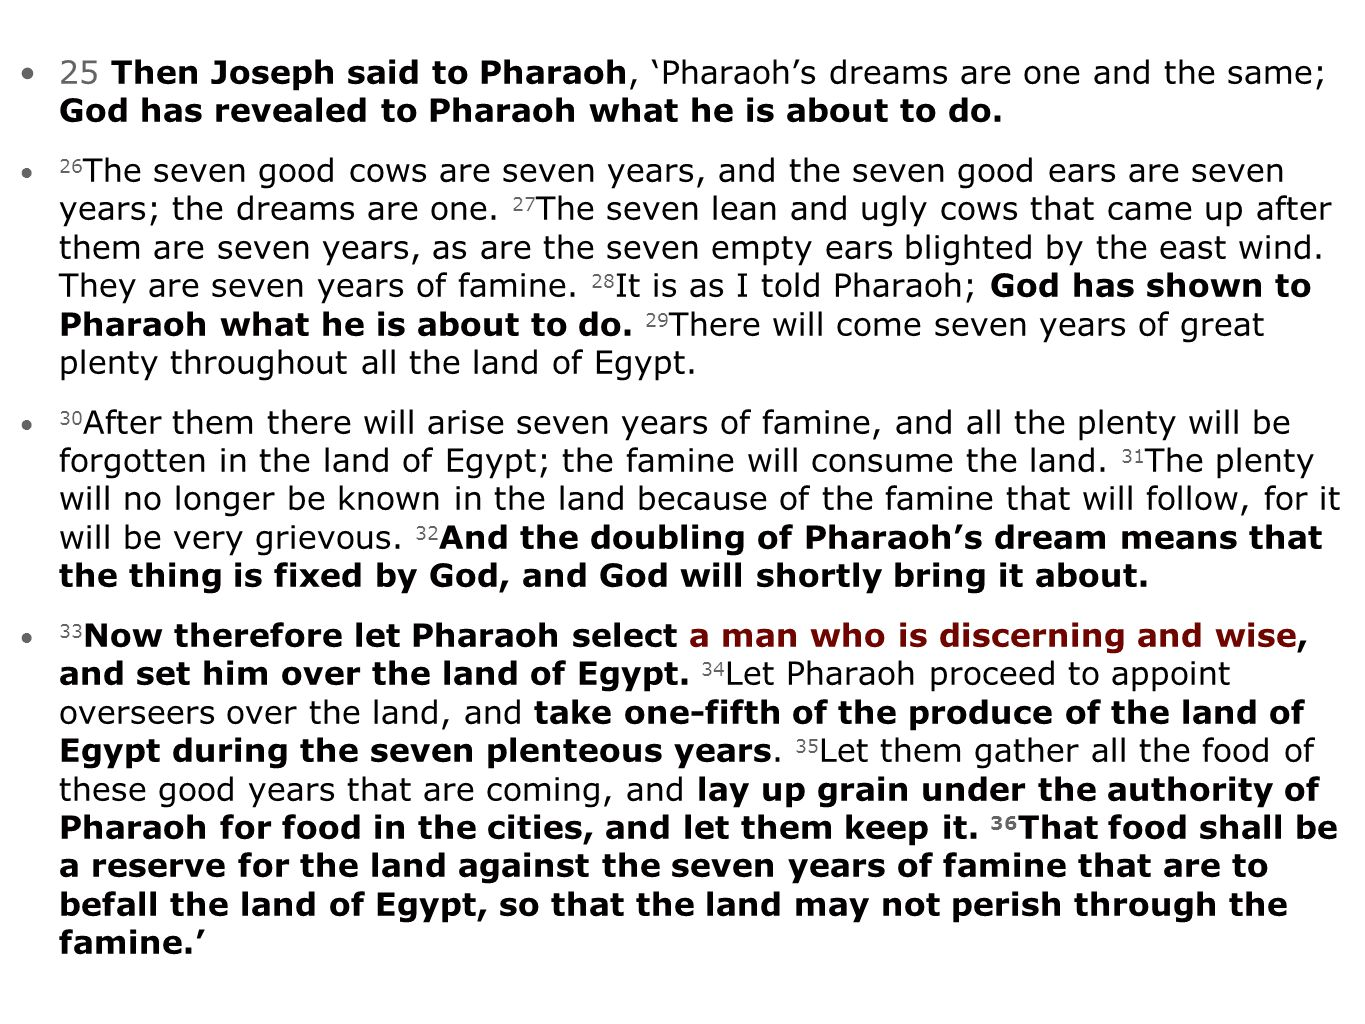 25 Then Joseph said to Pharaoh, 'Pharaoh's dreams are one and the same; God has revealed to Pharaoh what he is about to do.